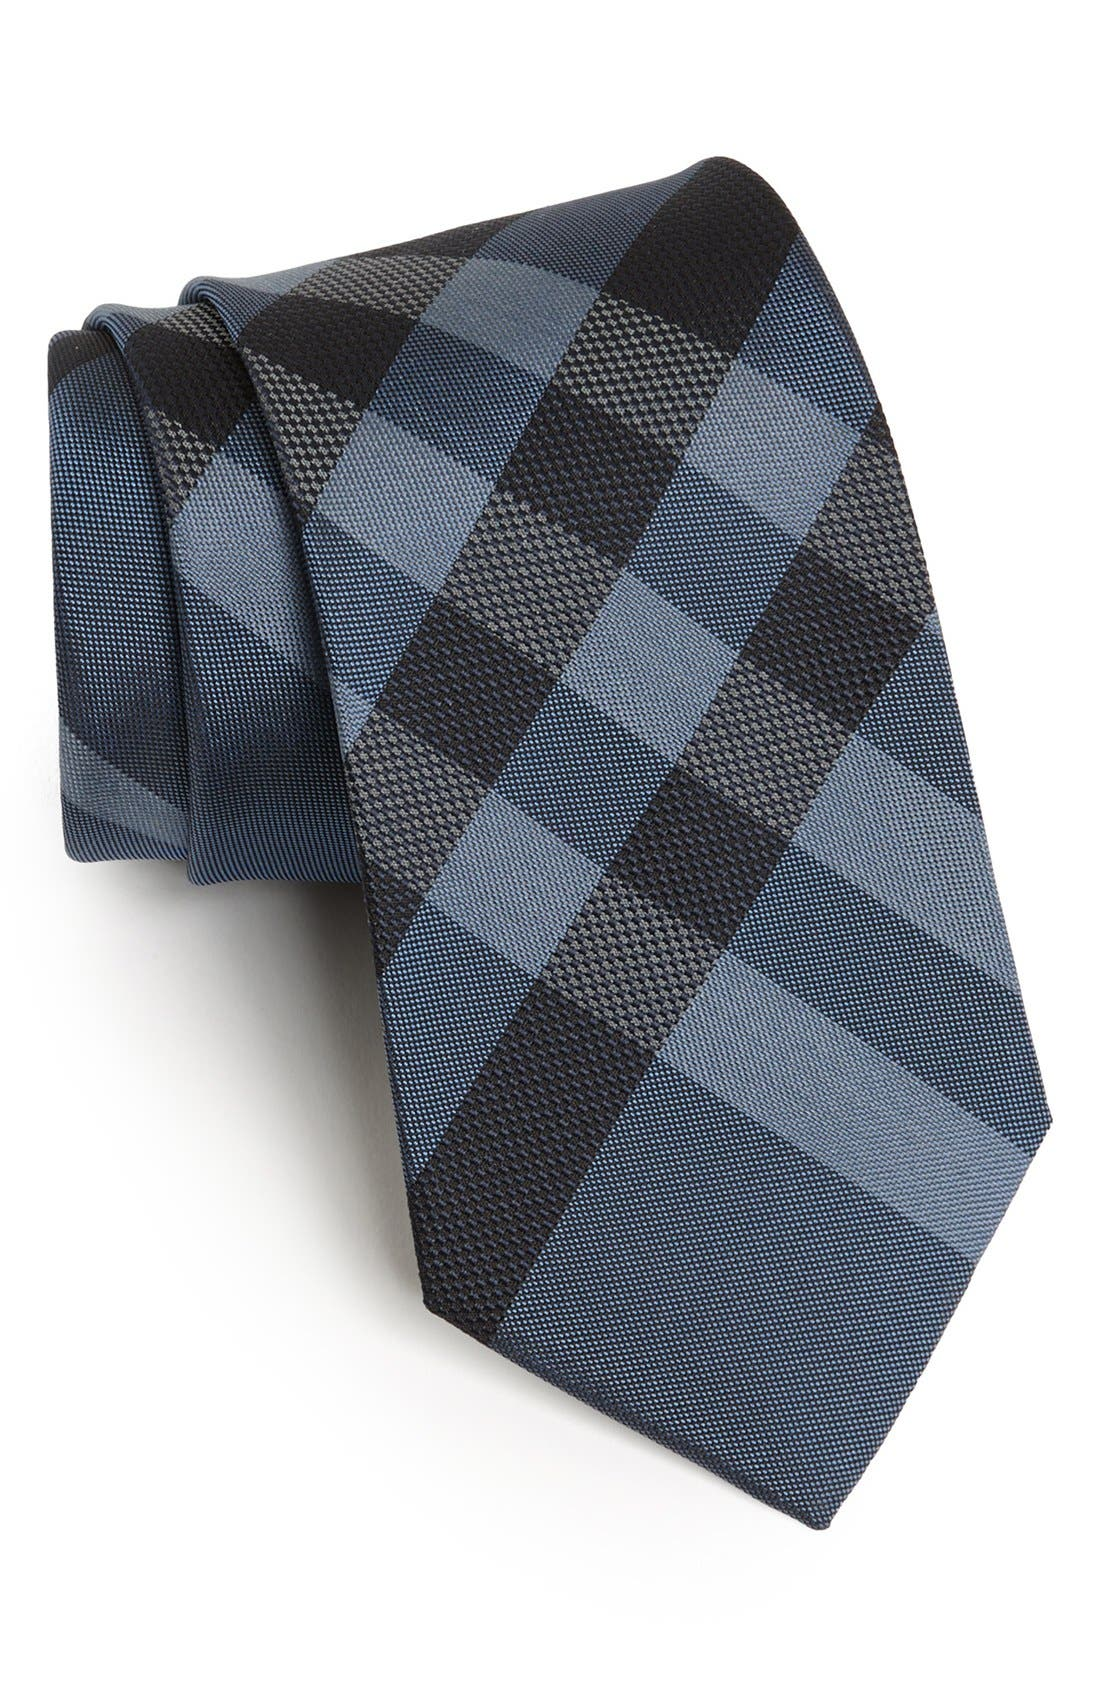 Main Image - Burberry London Woven Silk Tie